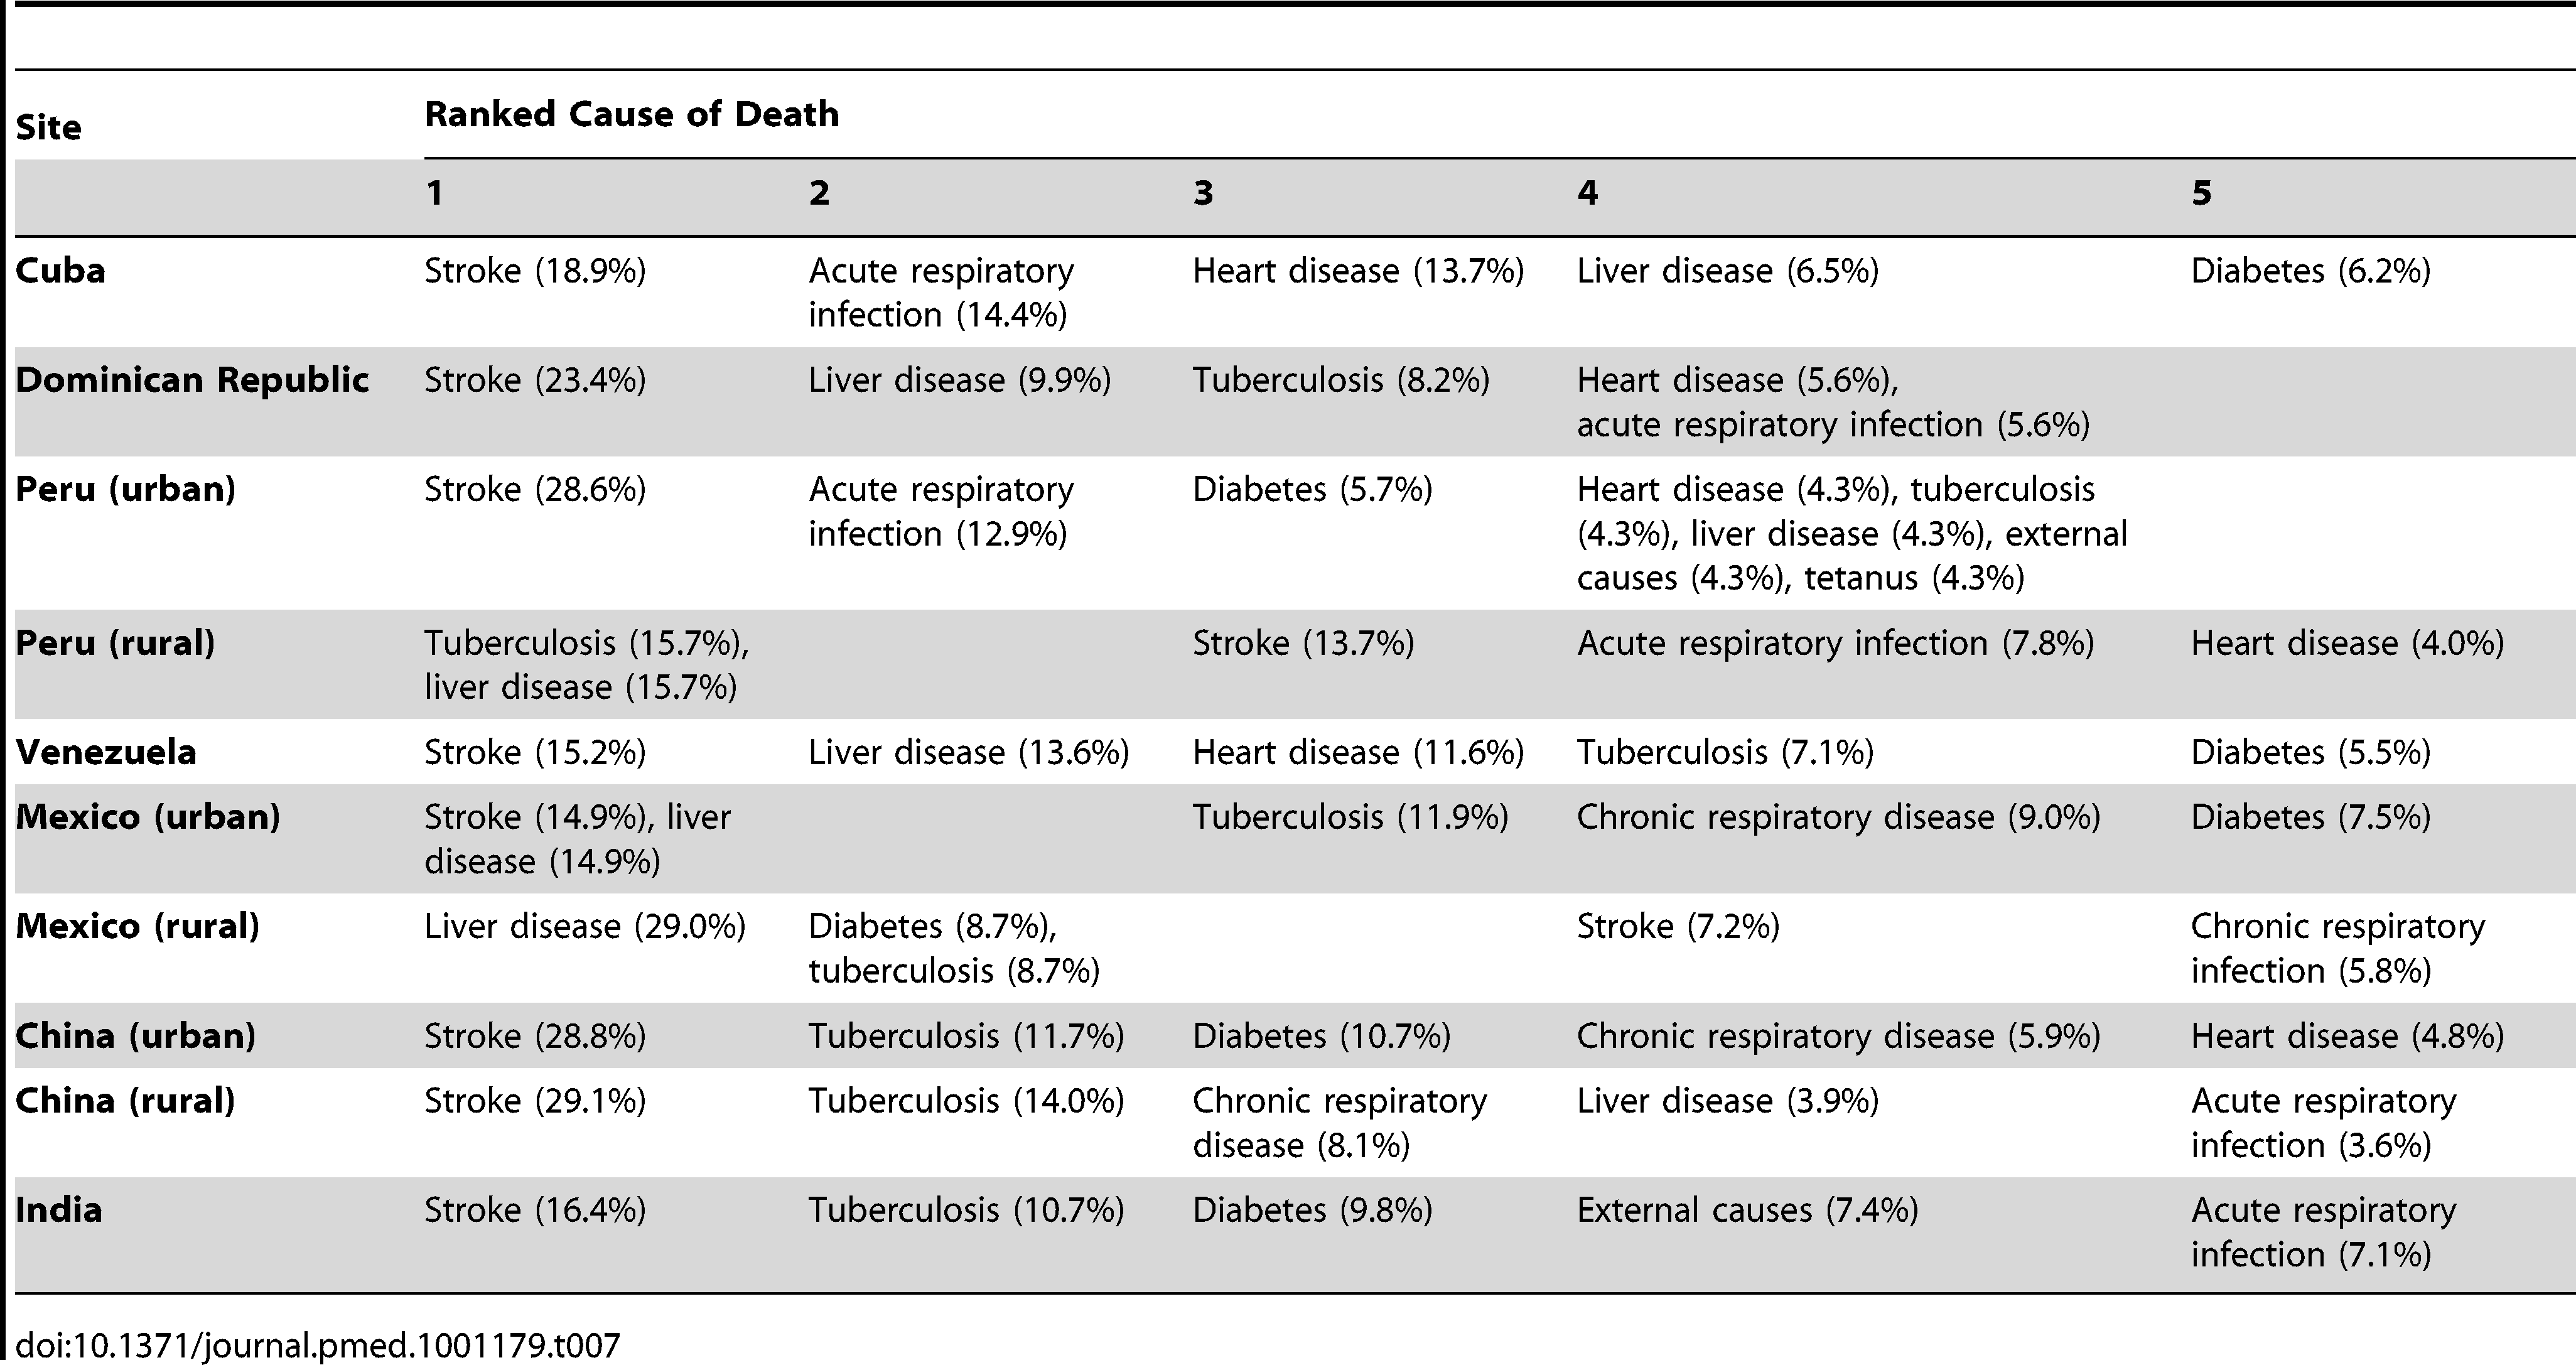 Five leading causes of death by site, using cause of death as interpreted probabilistically by the InterVA model.